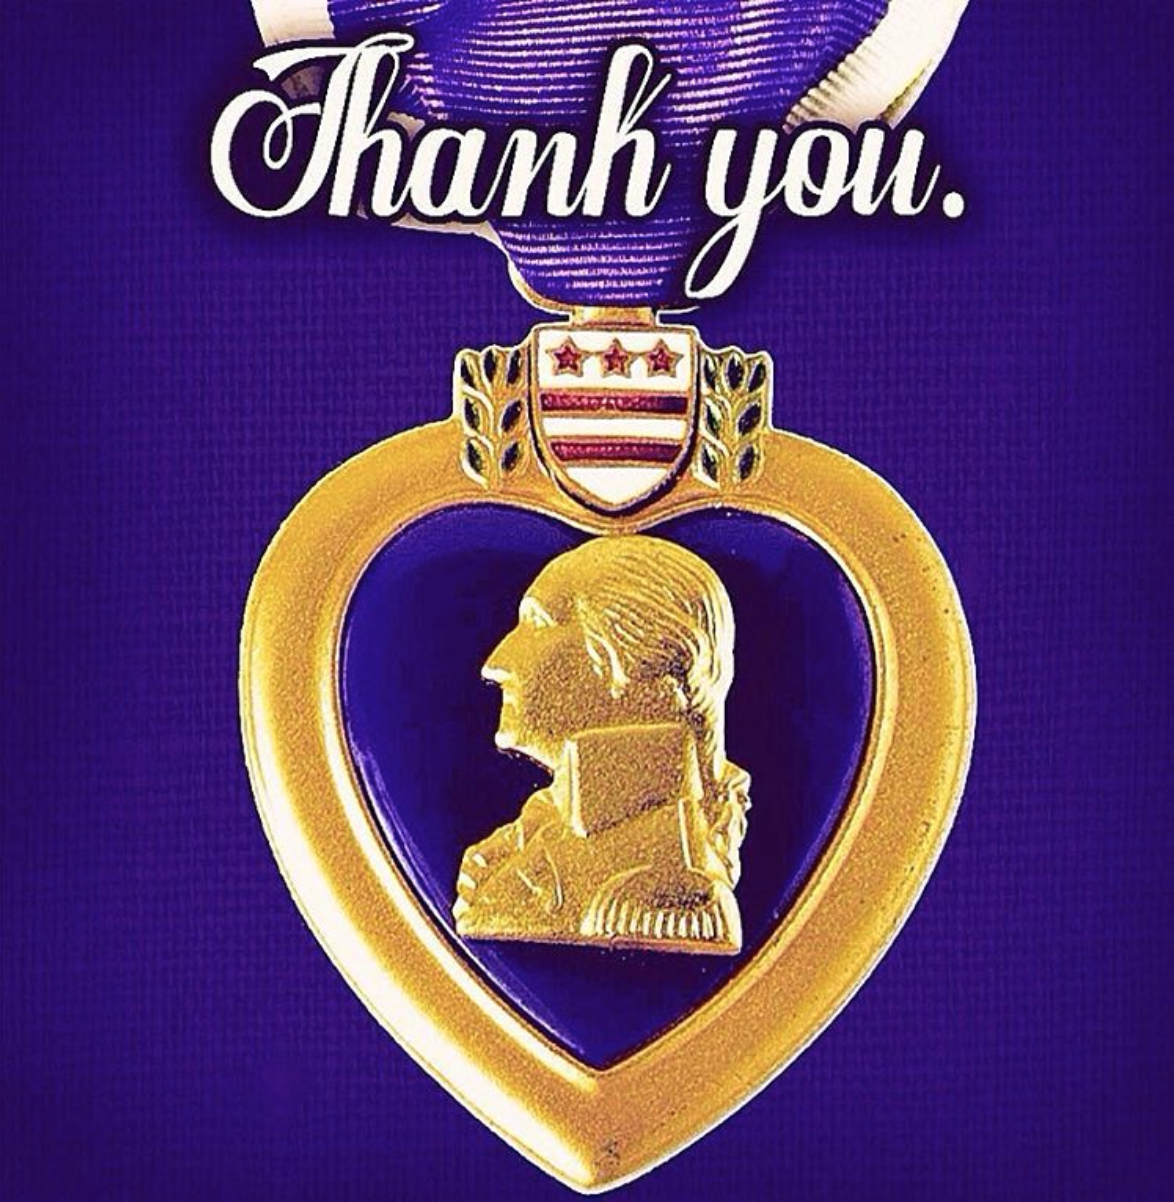 8 7 16 Today Is National Purple Heart Day We Could Never Give Enough Thanks To Those Service Men And Women Purple Heart Day Purple Heart Medal Purple Heart